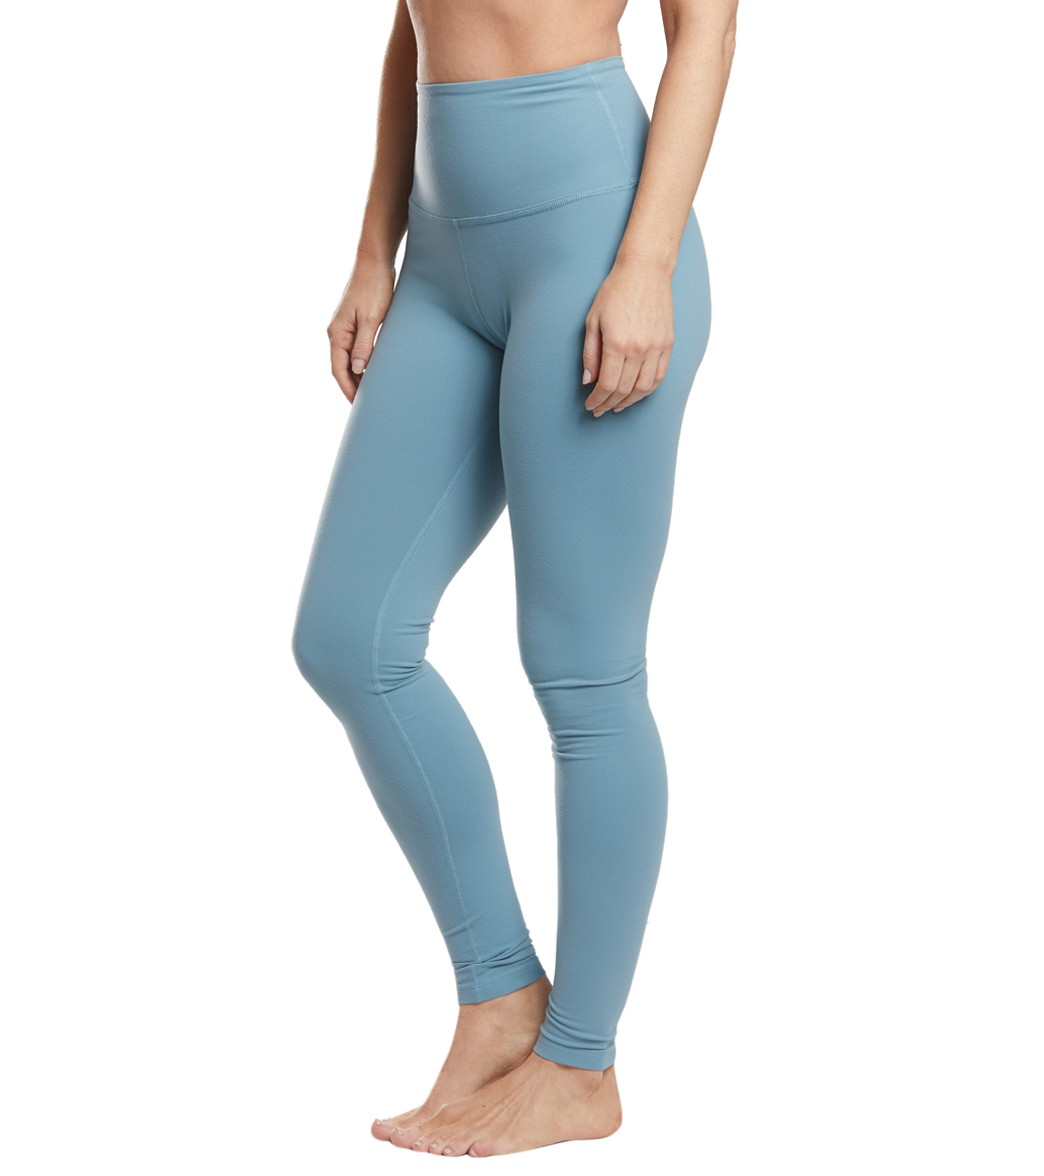 530181db1ffe39 Beyond Yoga Take Me Higher Yoga Leggings at YogaOutlet.com - Free ...